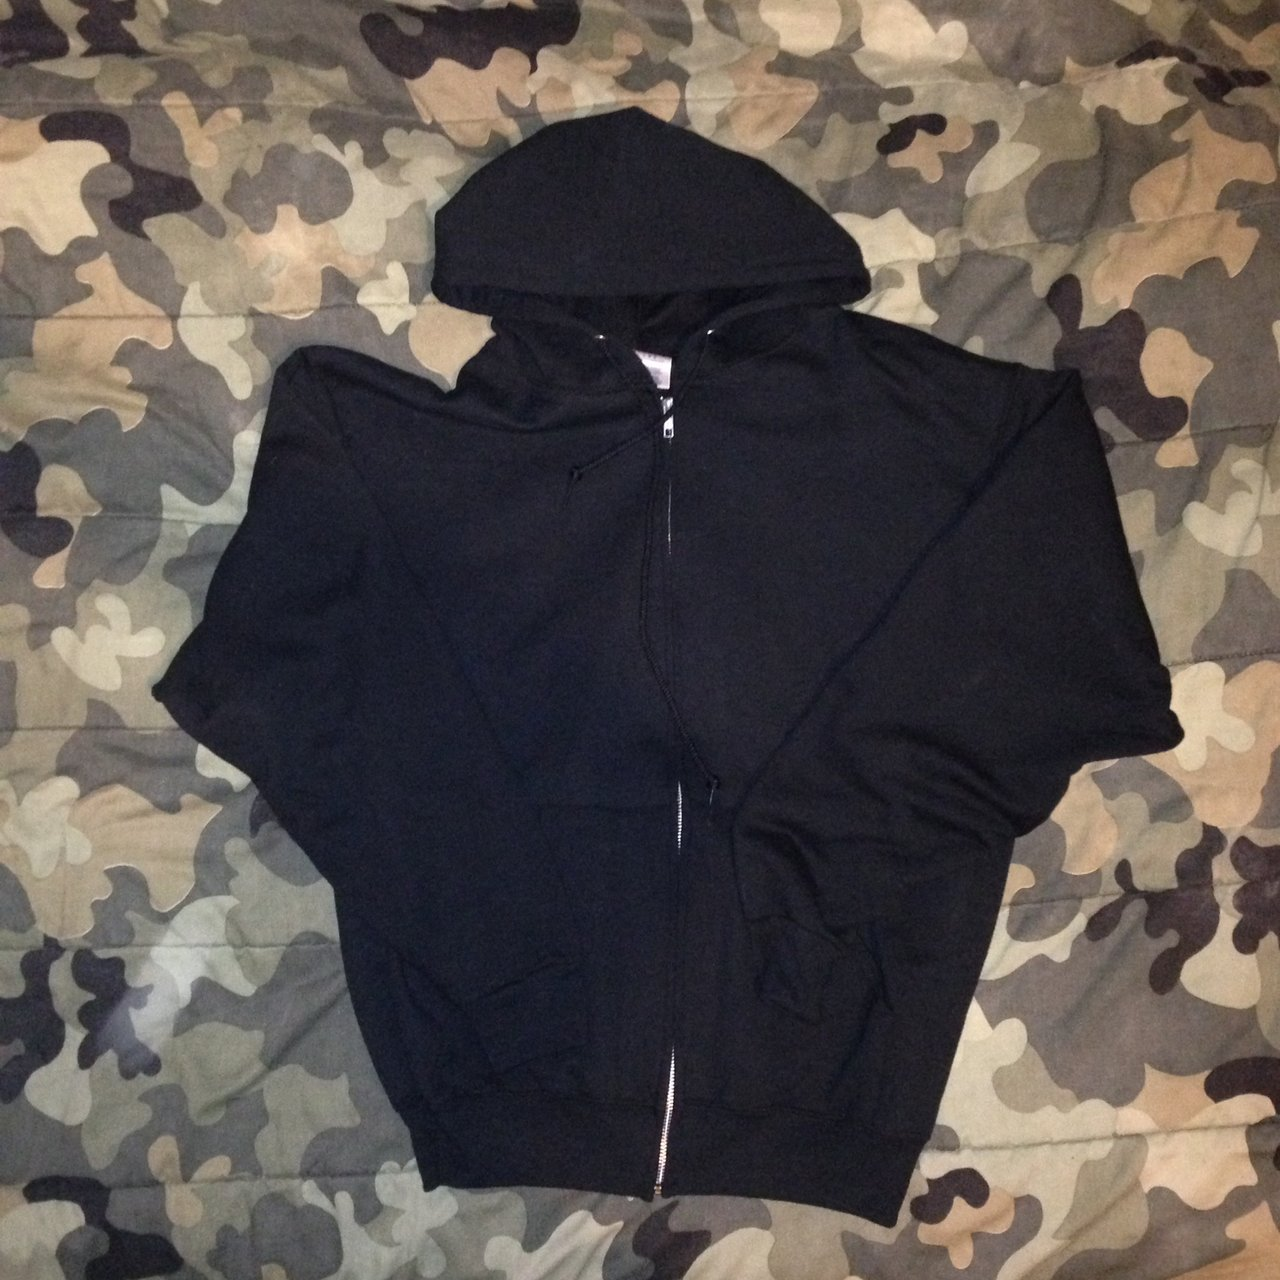 Jer Zees blank black hoodie. Slightly worn. Almost good as a - Depop d1f6b7f77bfd